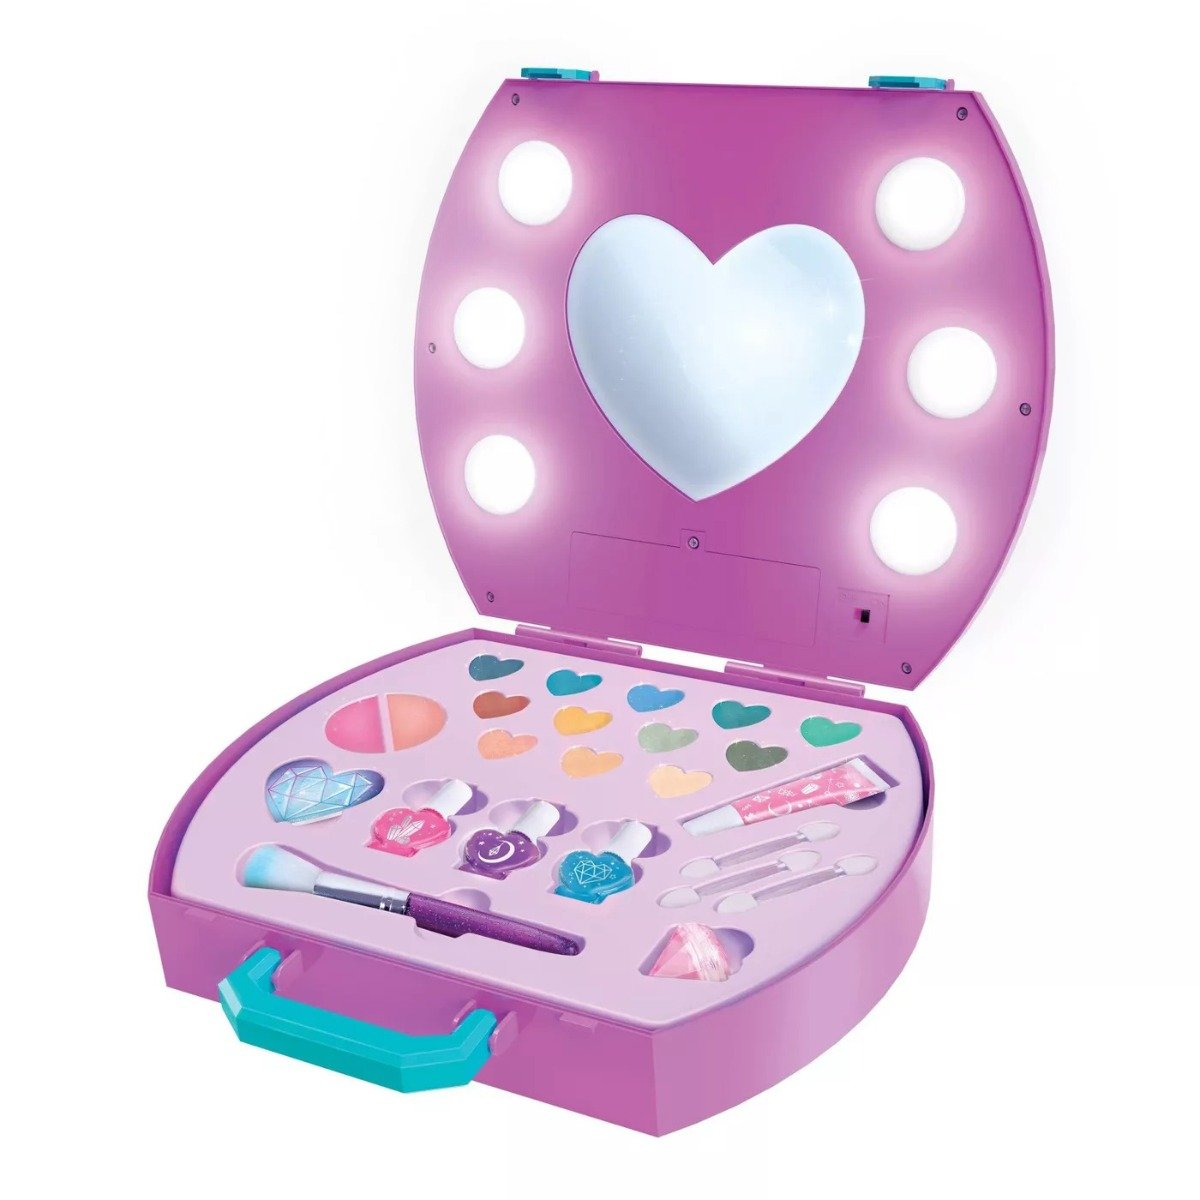 Studio de make up cu lumini Make It Real